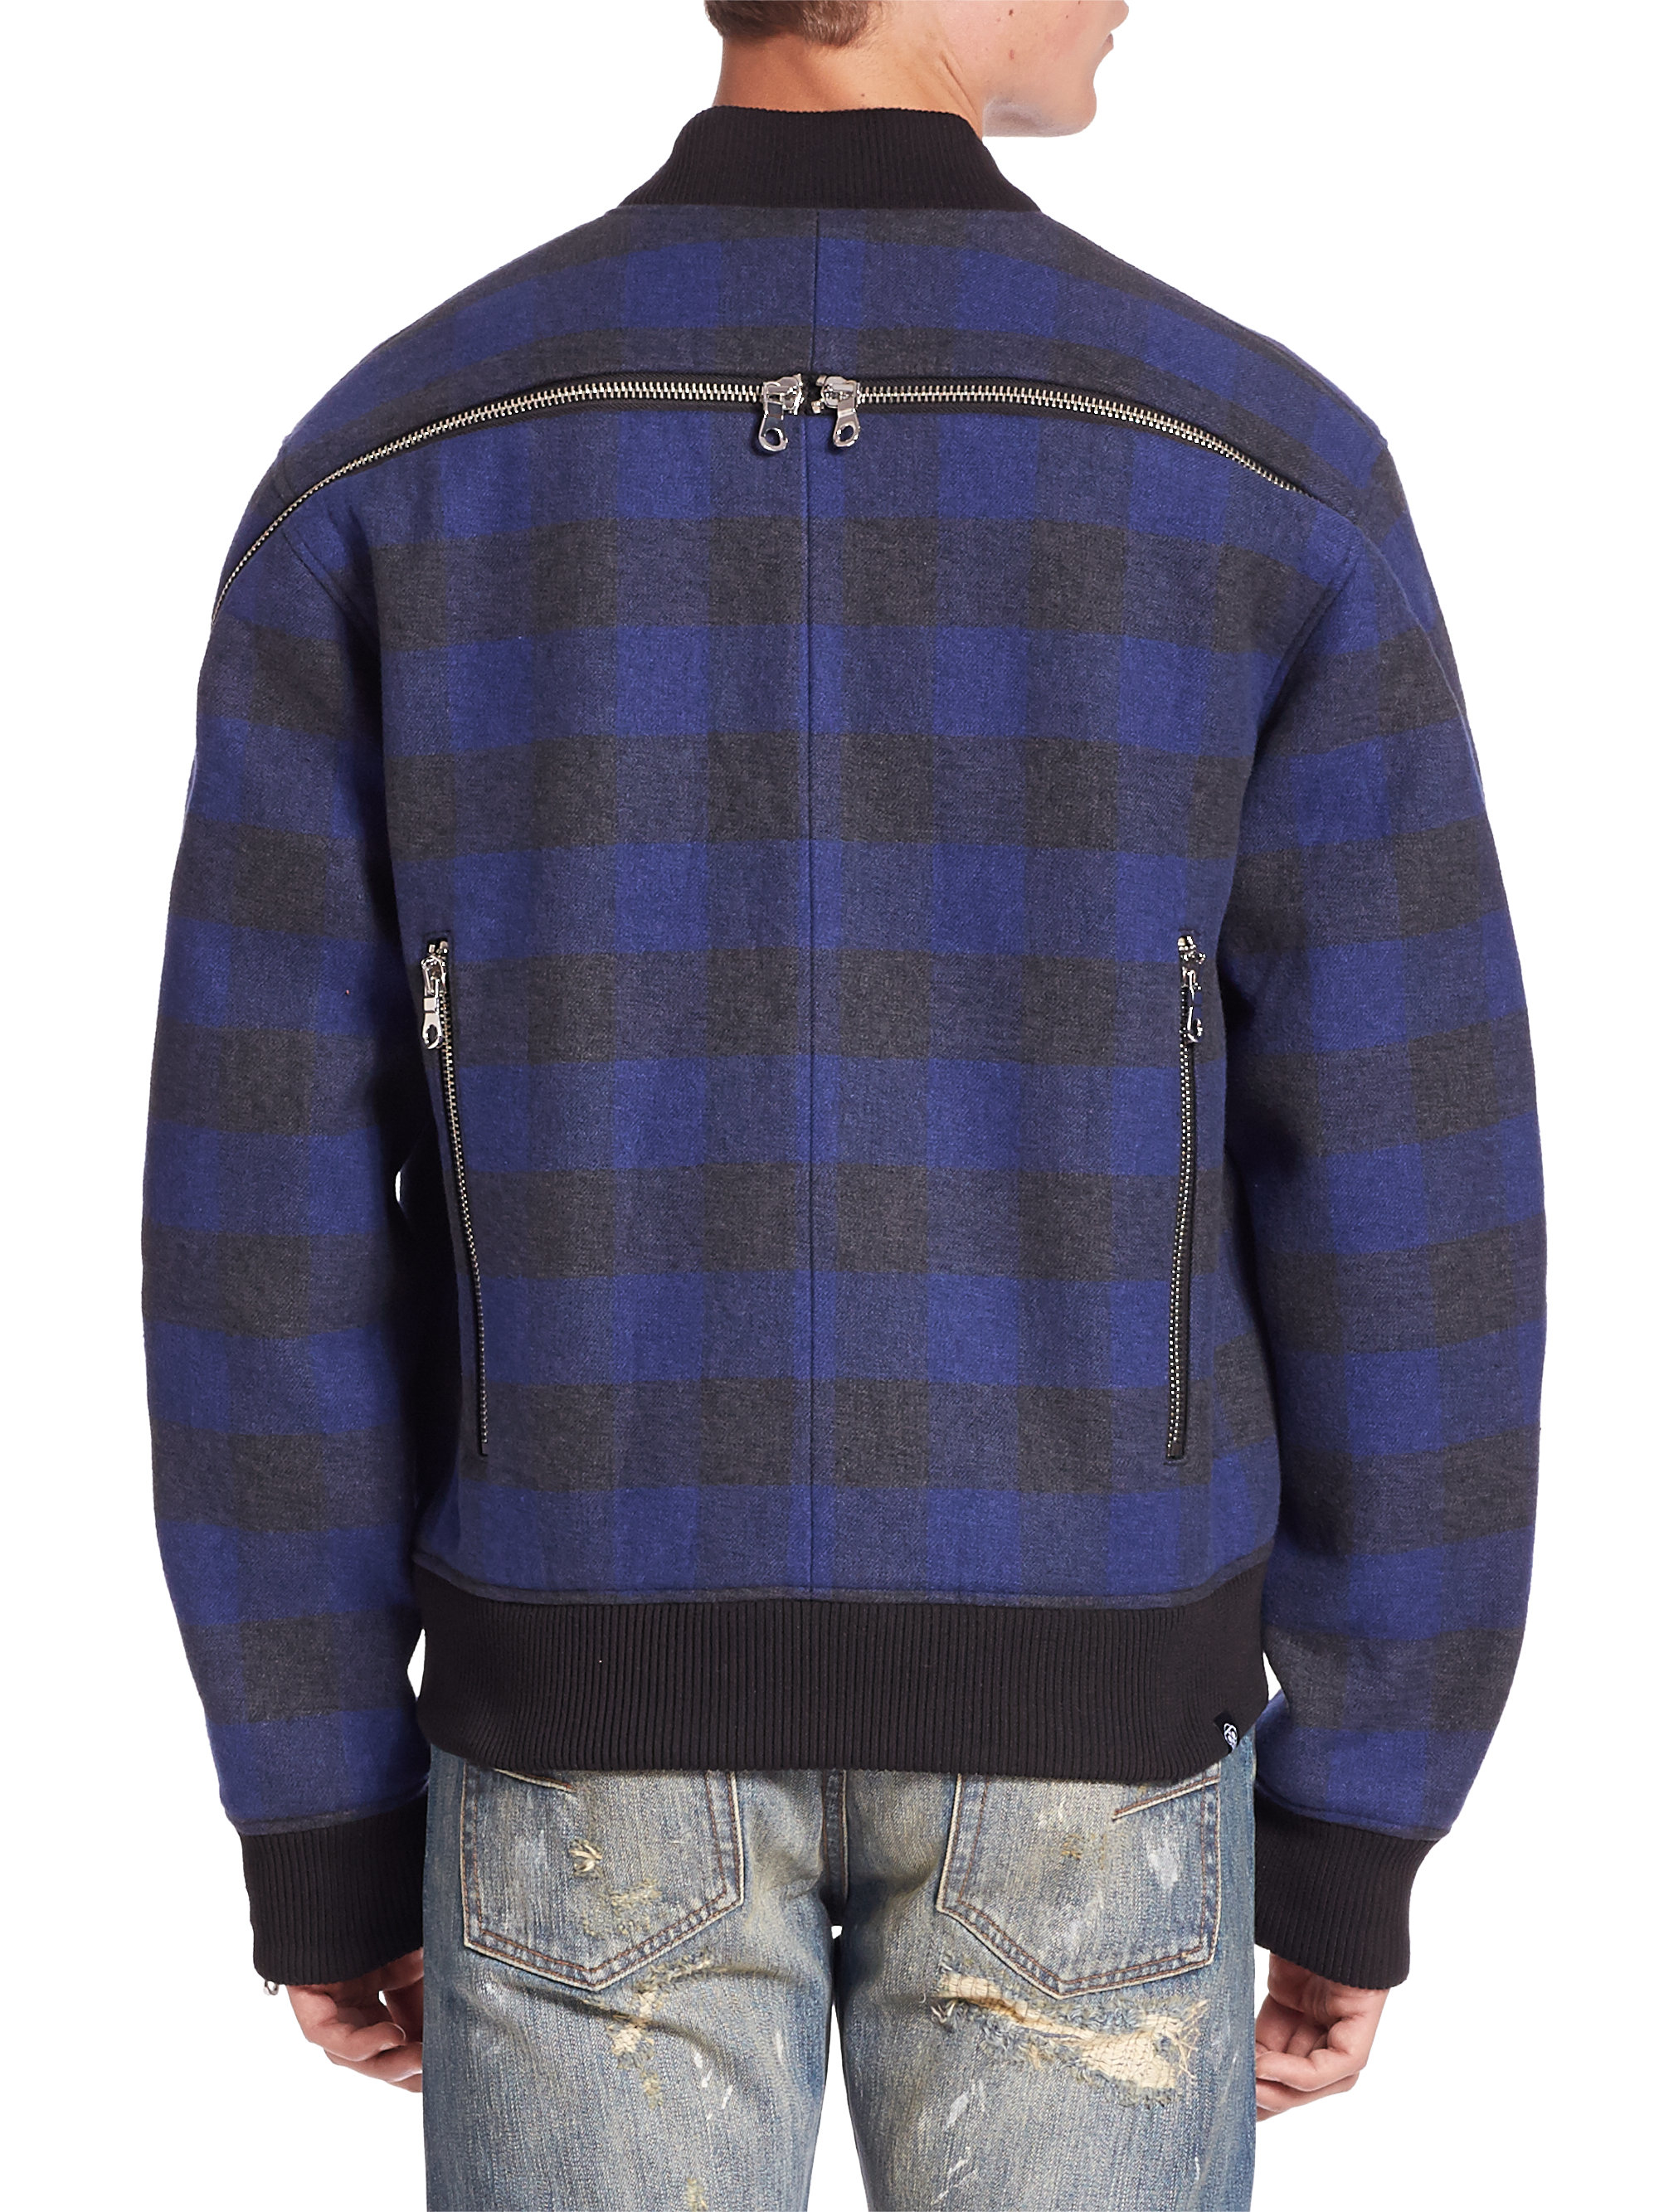 Lyst Mostly Heard Rarely Seen Plaid Bomber Jacket In Blue For Men